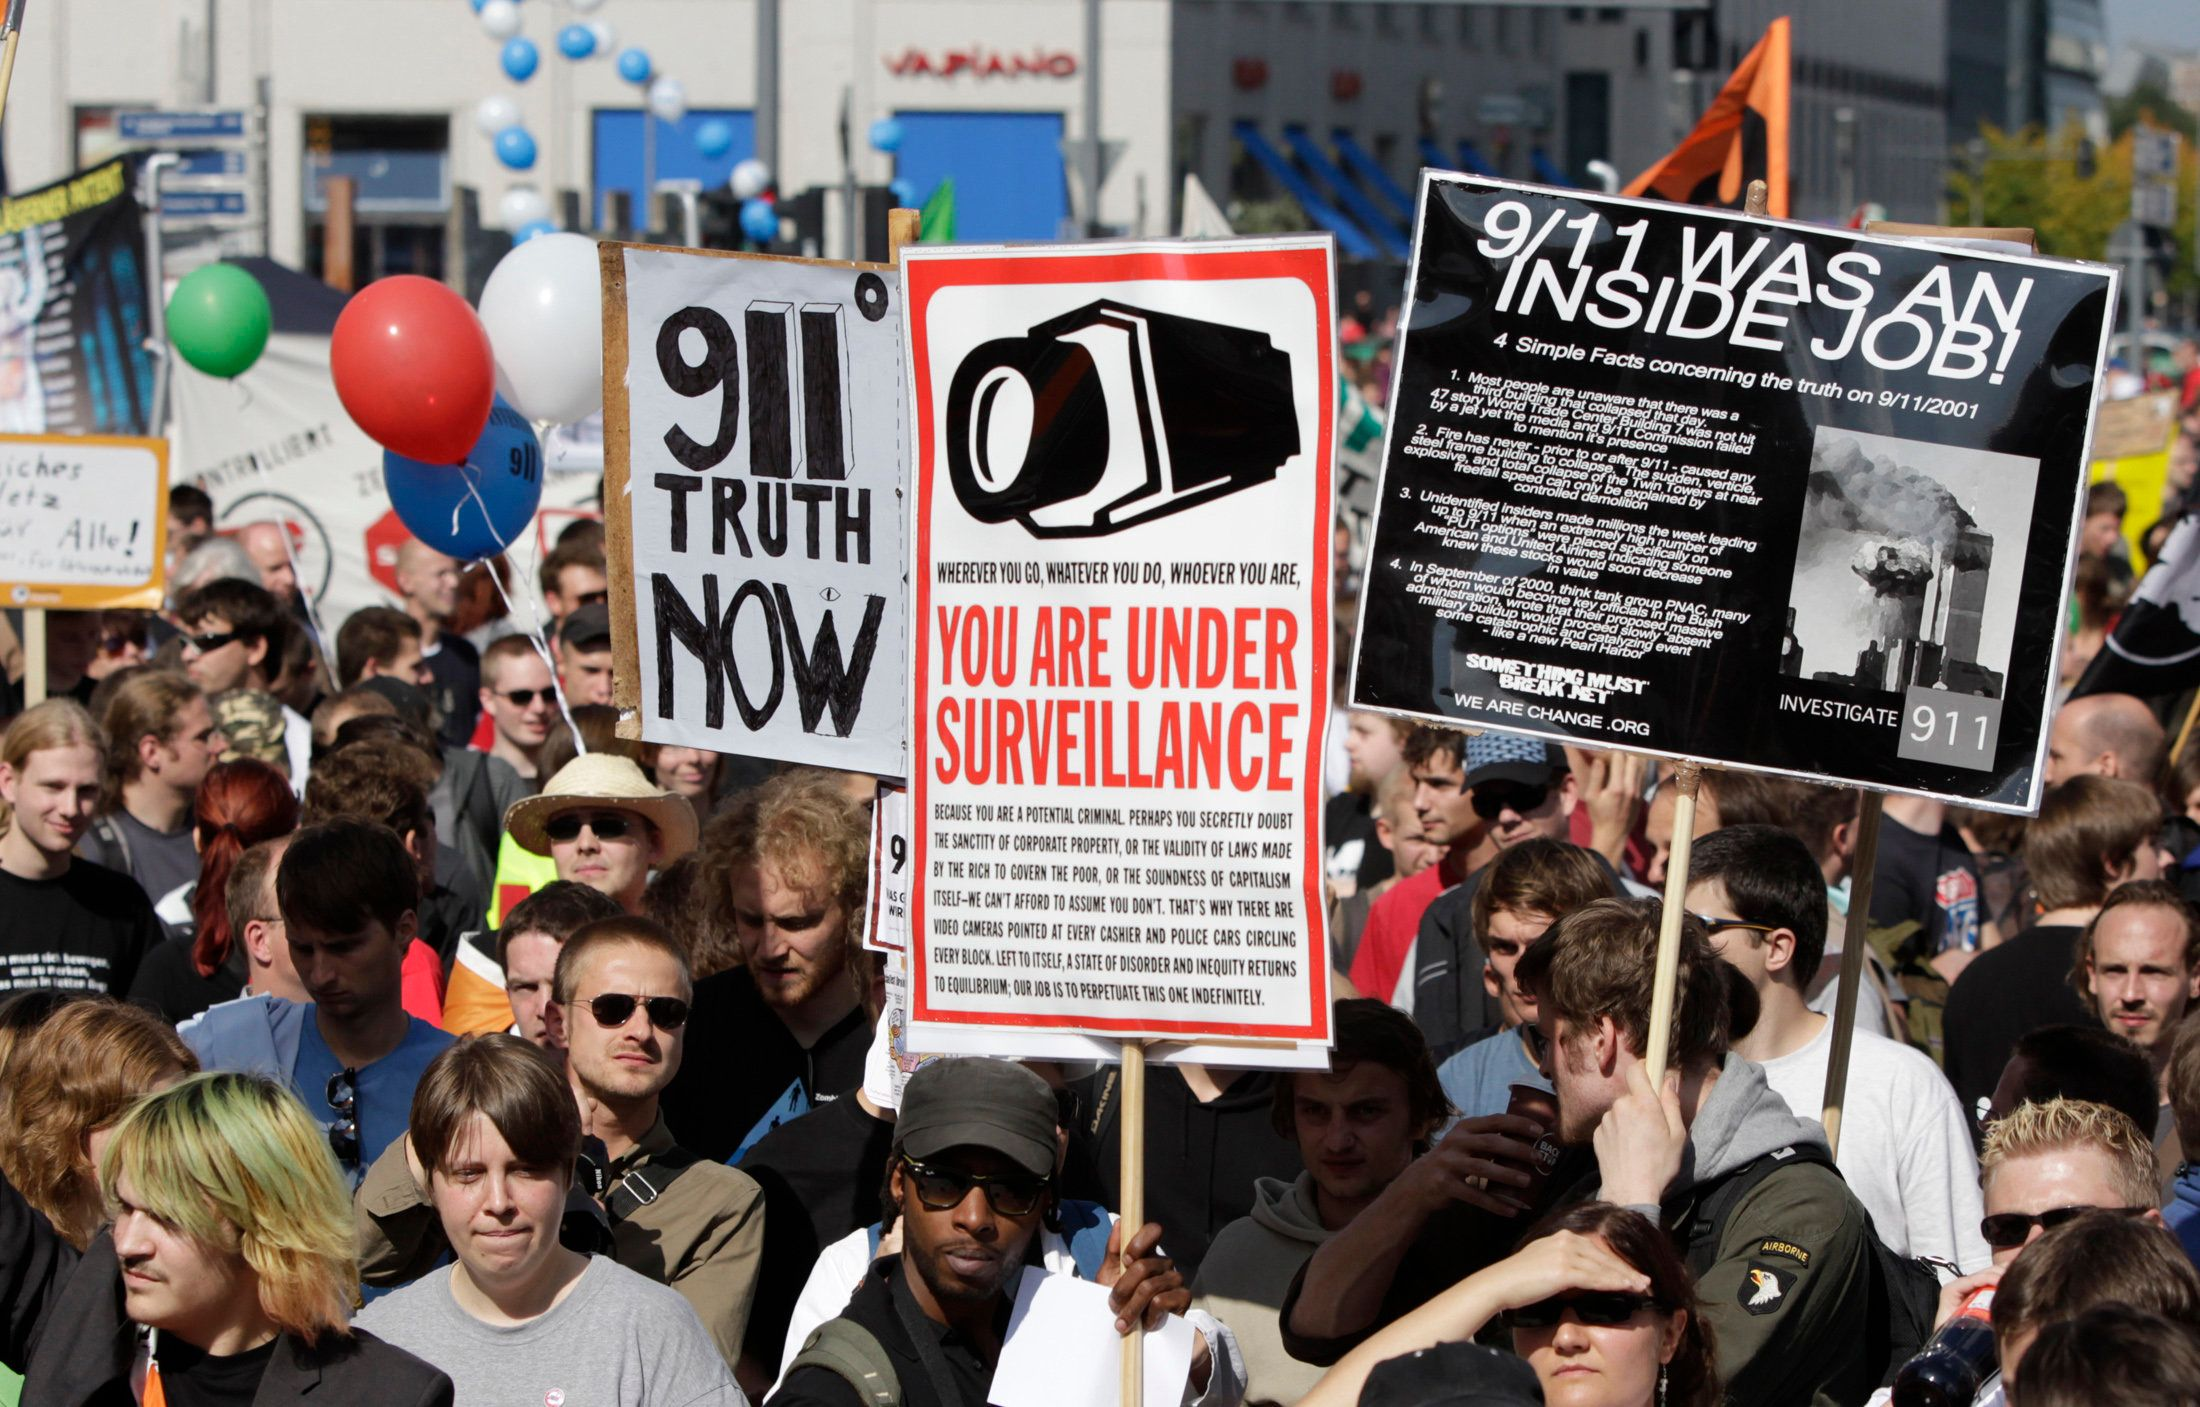 Conspiracy theorists hold signs and placards during a demonstration for data privacy in Berlin, September 11, 2010. REUTERS/Tobias Schwarz (GERMANY - Tags: POLITICS CIVIL UNREST SOCIETY)